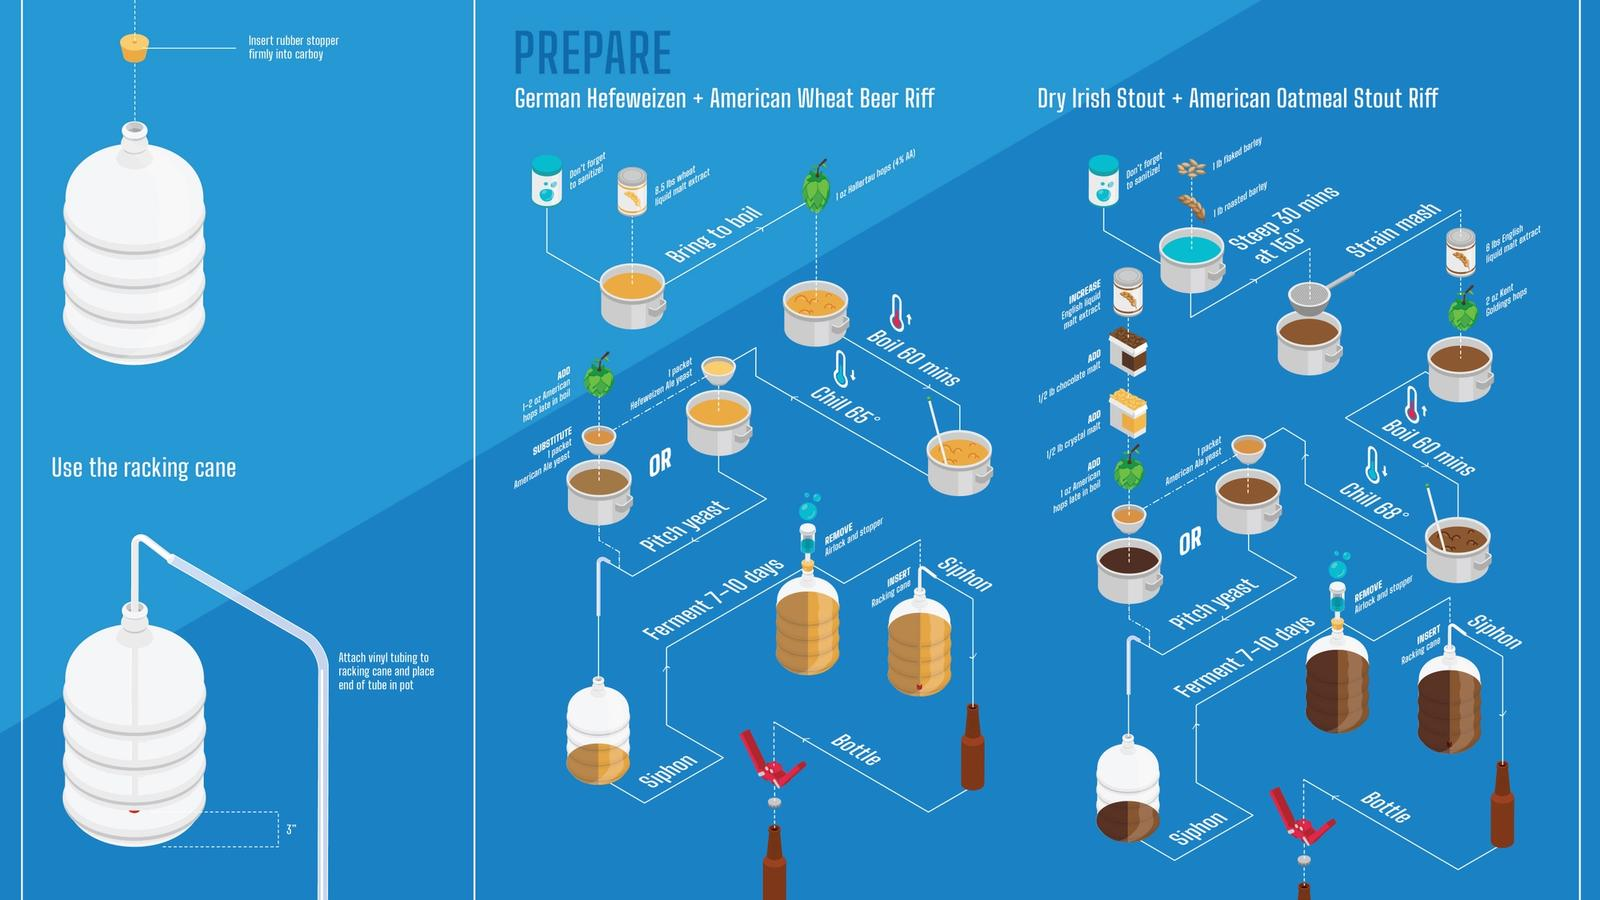 Blue Pint process visualization